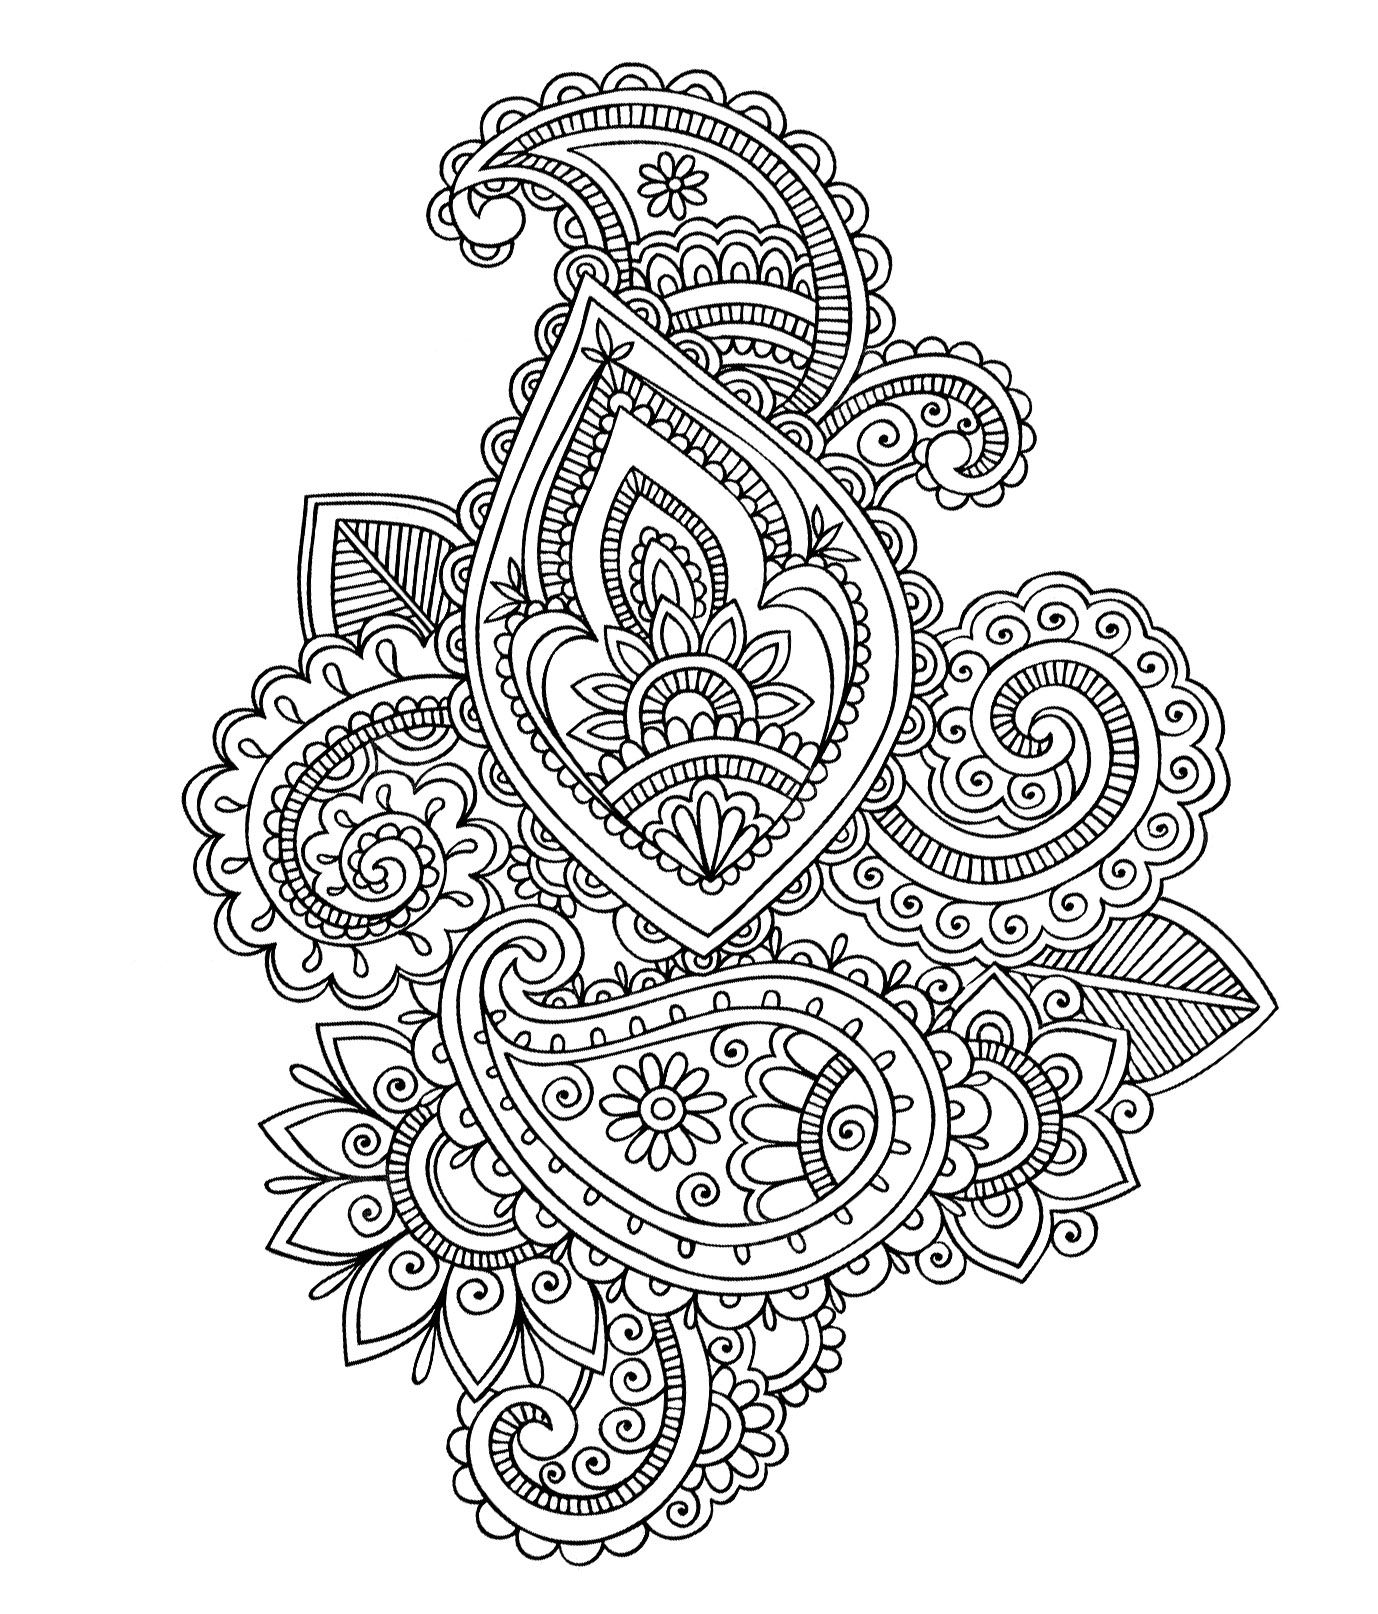 Adults and coloring books - Free Coloring Page Coloring Adult Paisley Cashemire From The Gallery Oriental Coloring Pages For Adultsfree